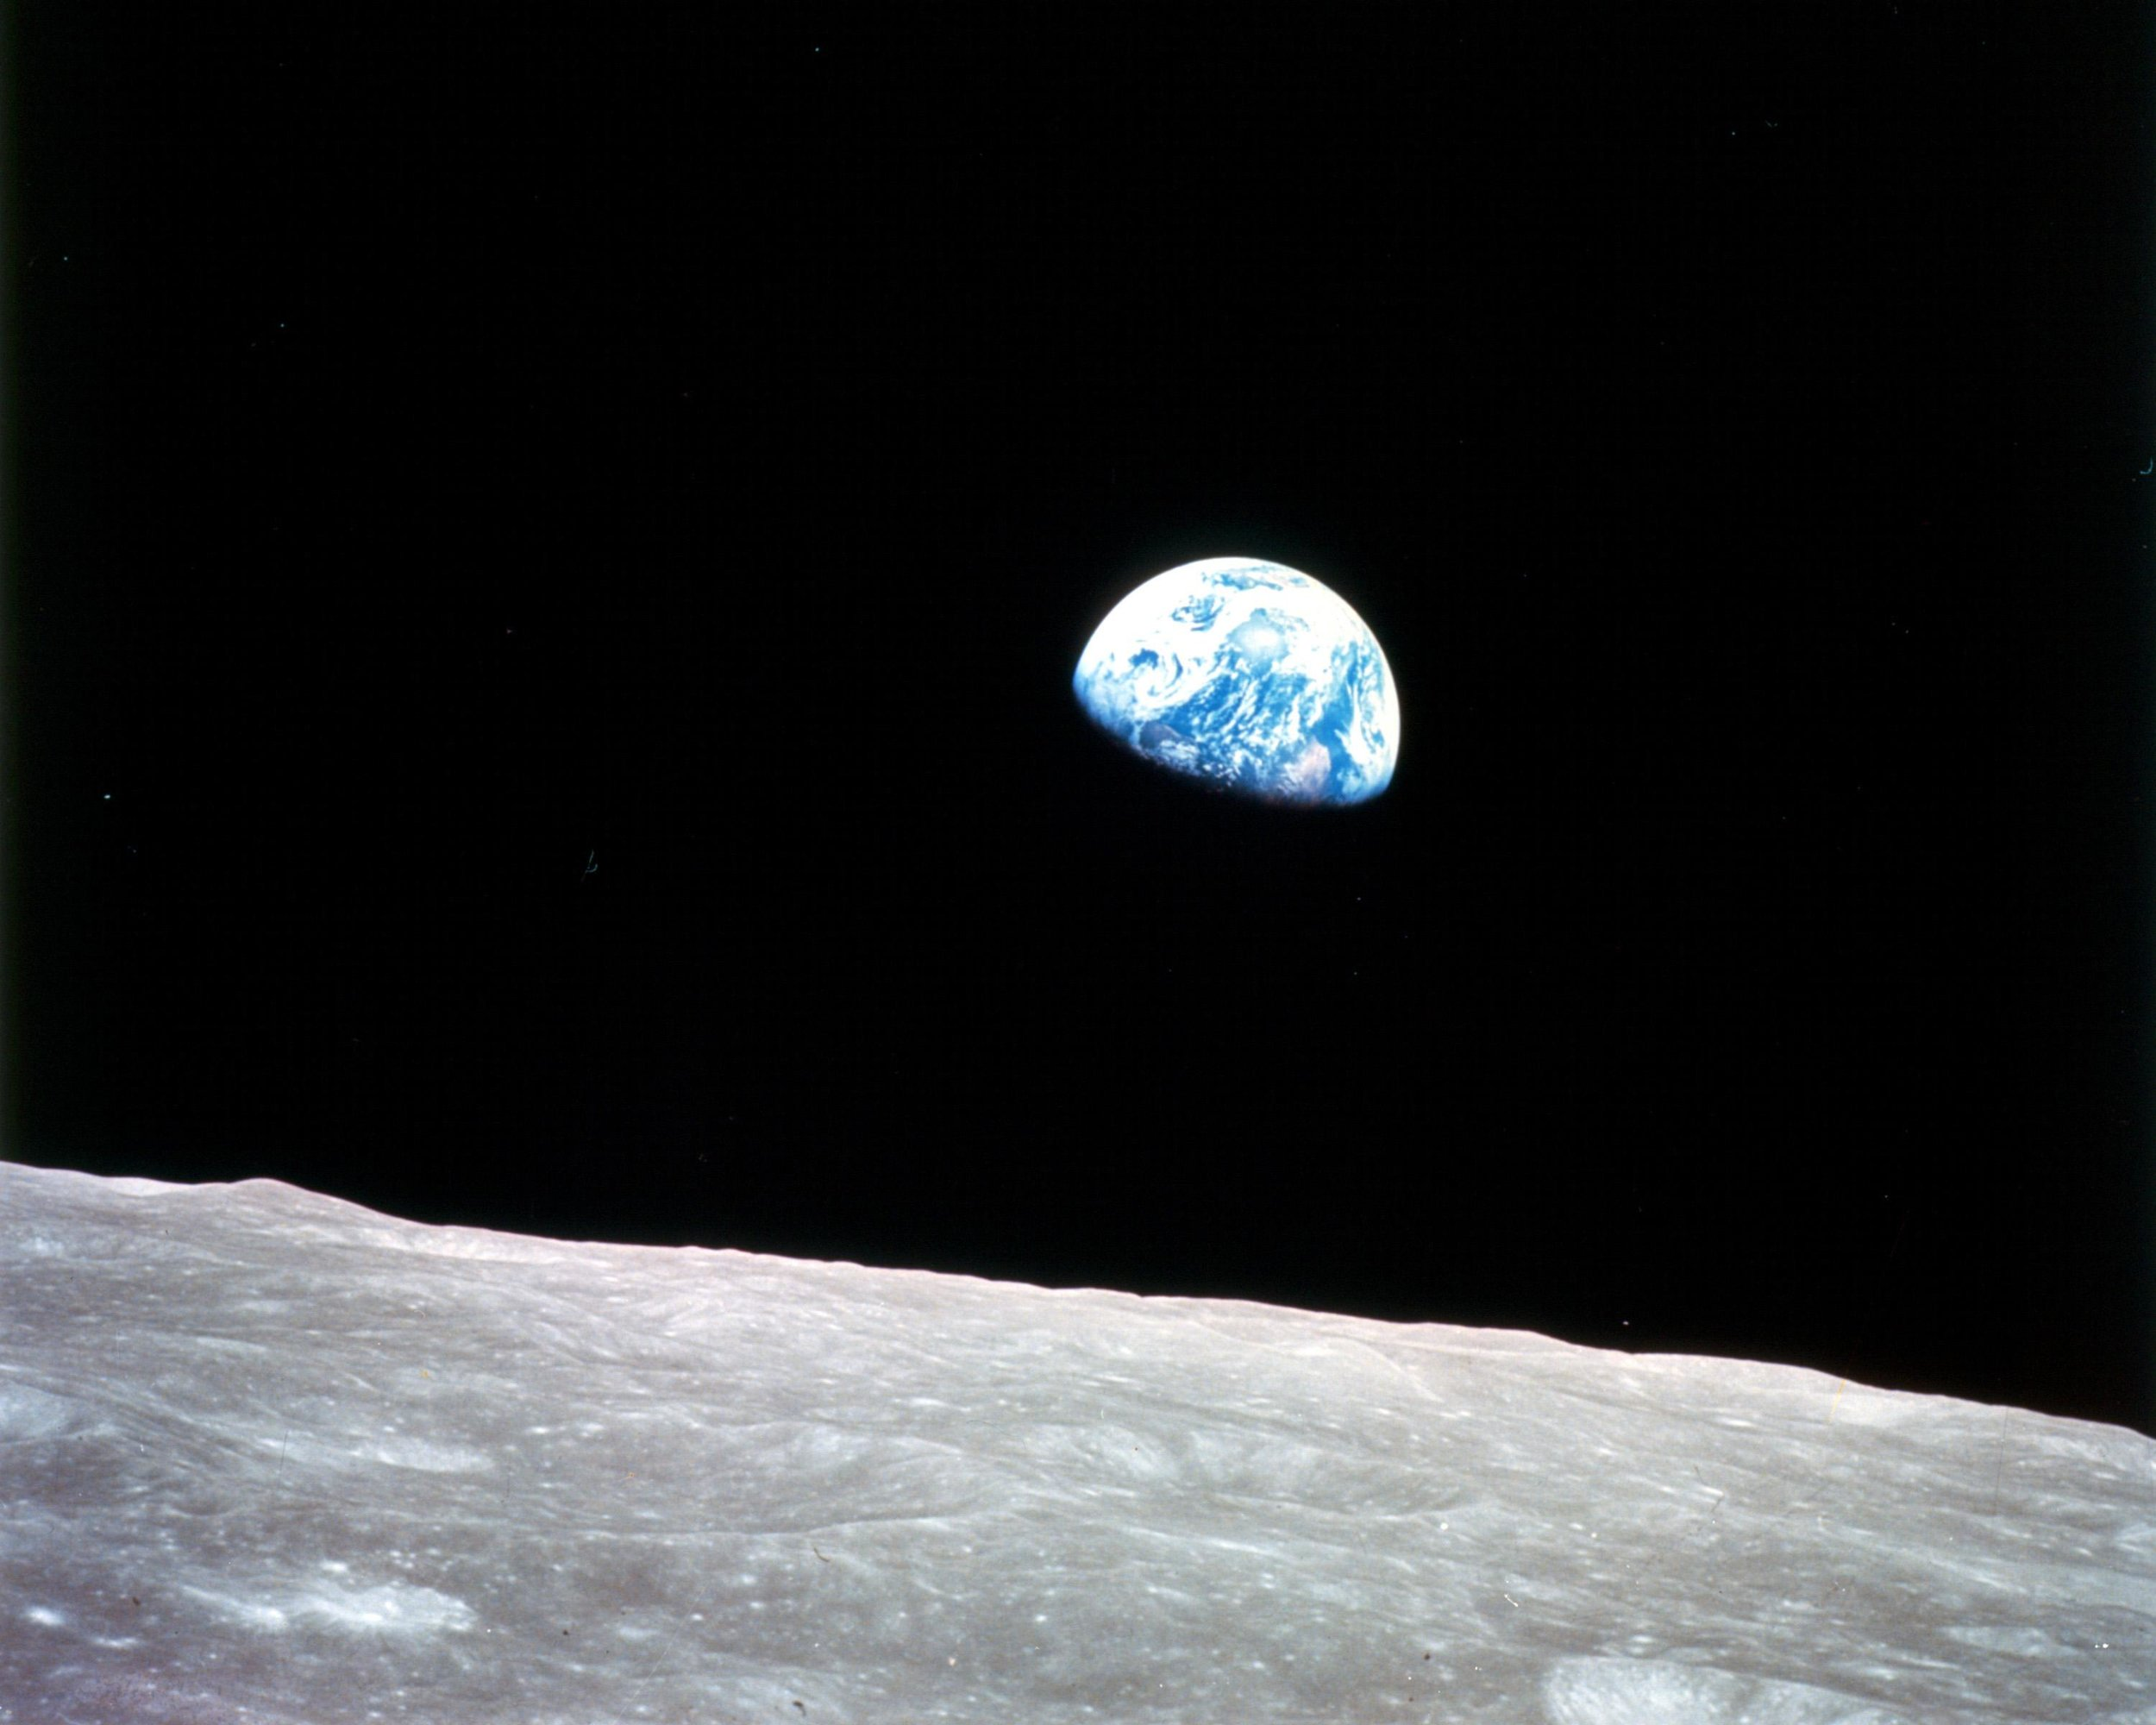 Click through to learn more about the famous Earthrise image! NASA recreated it digitally, and that's pretty awesome.